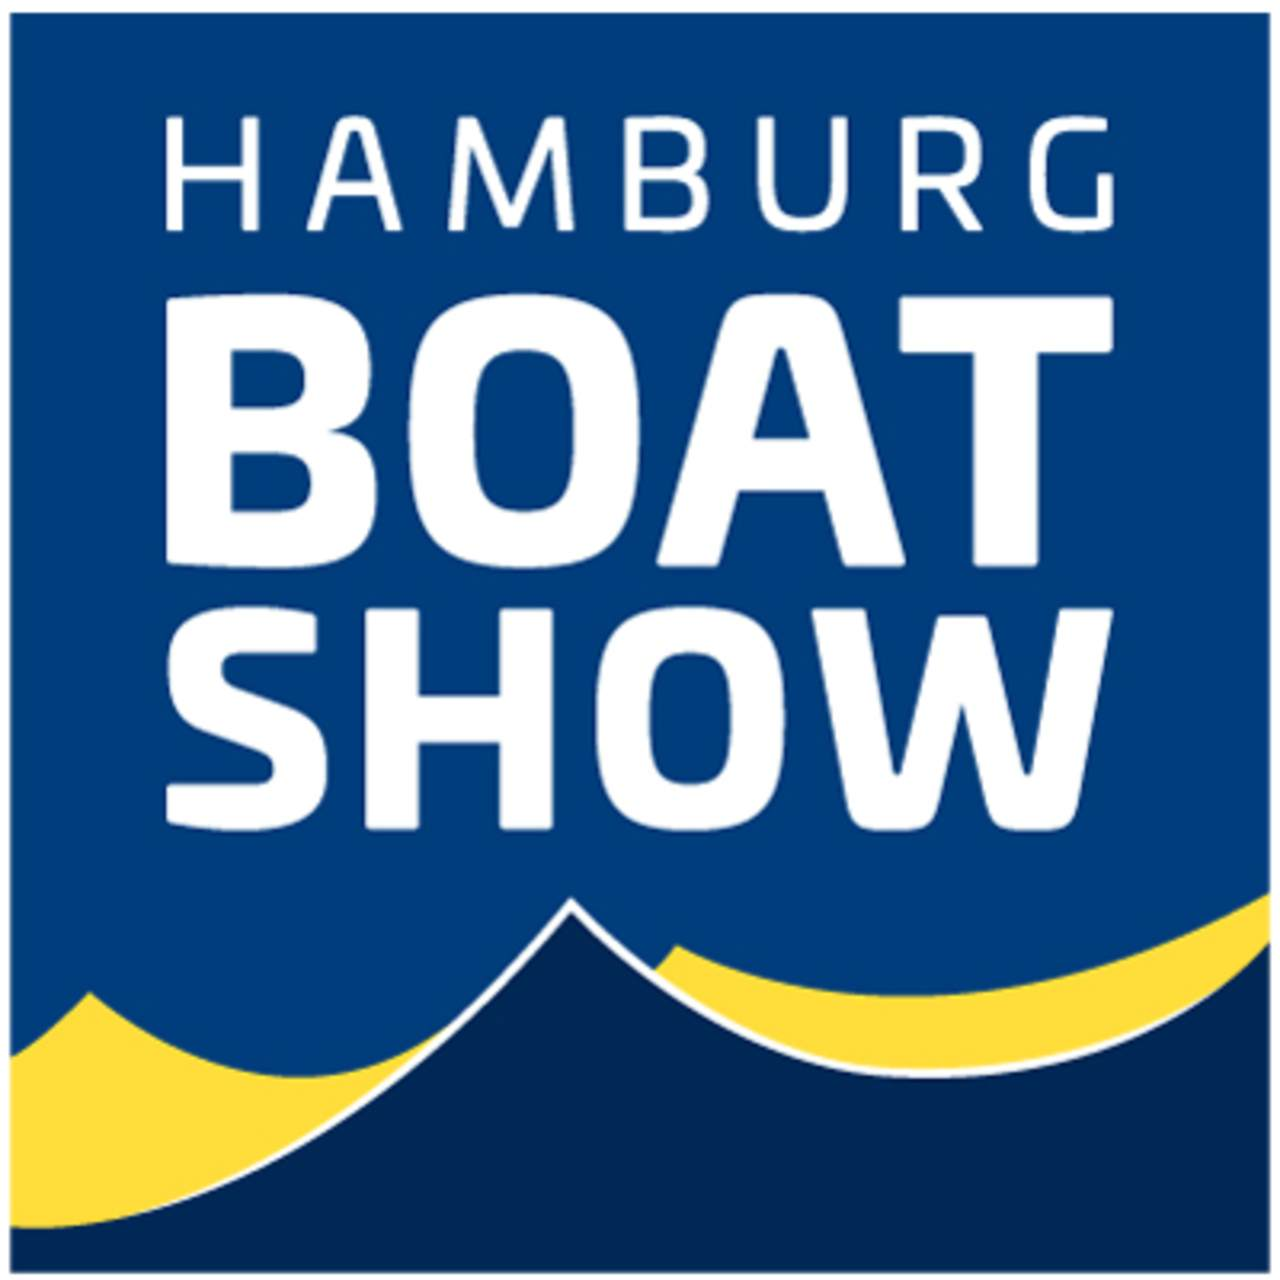 GERMANY – HAMBURG BOAT SHOW